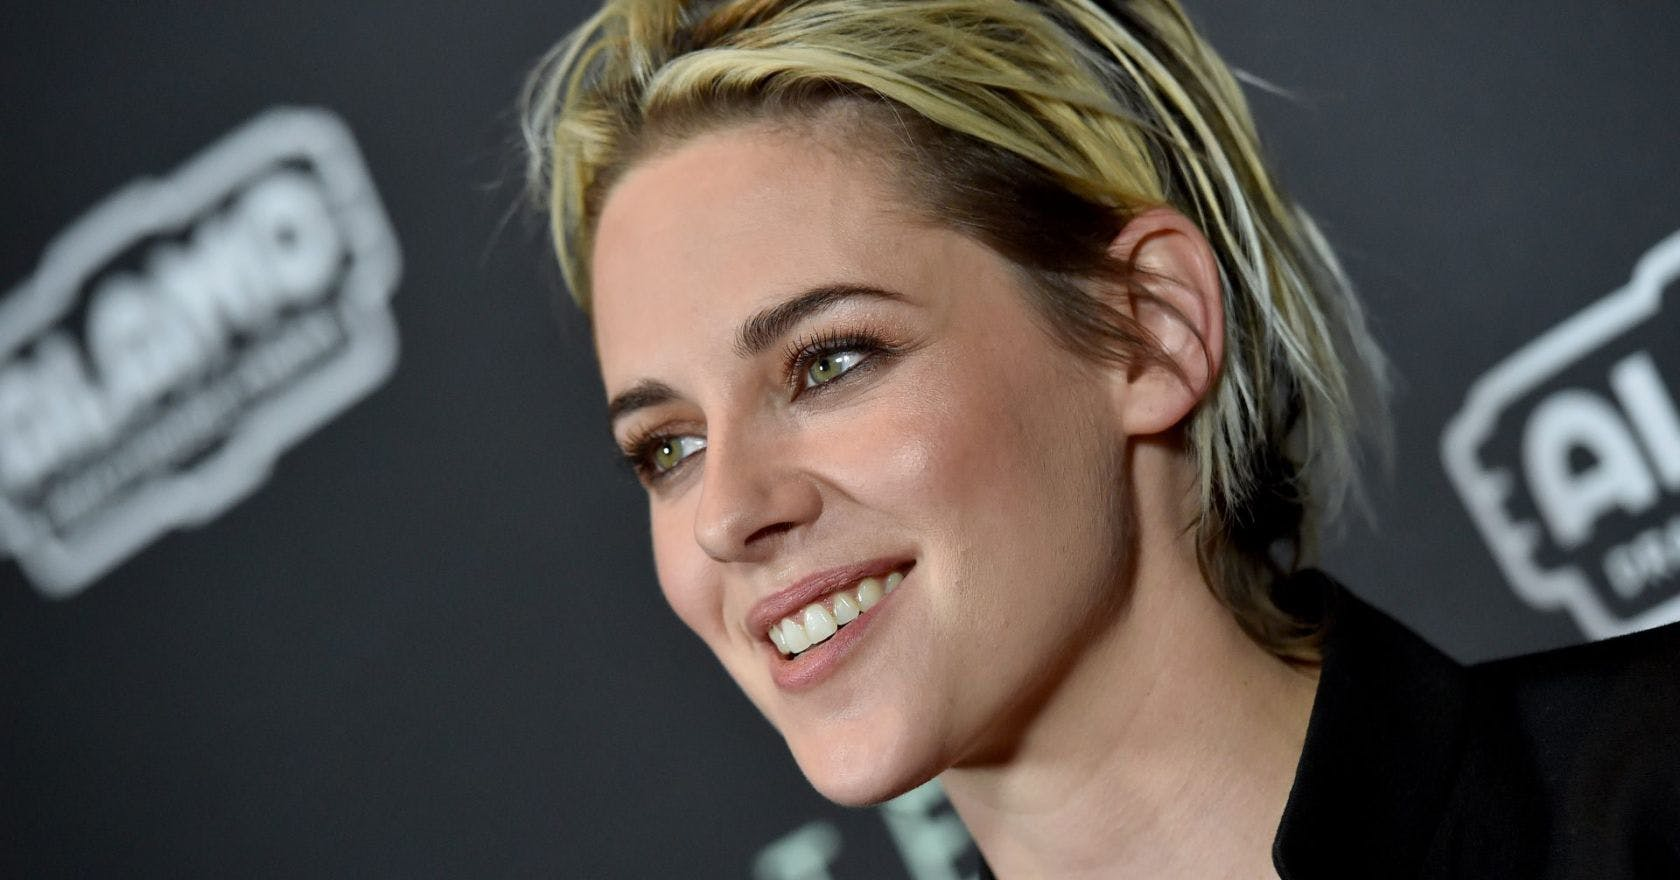 Ready for your first look at Kristen Stewart as Princess Diana?